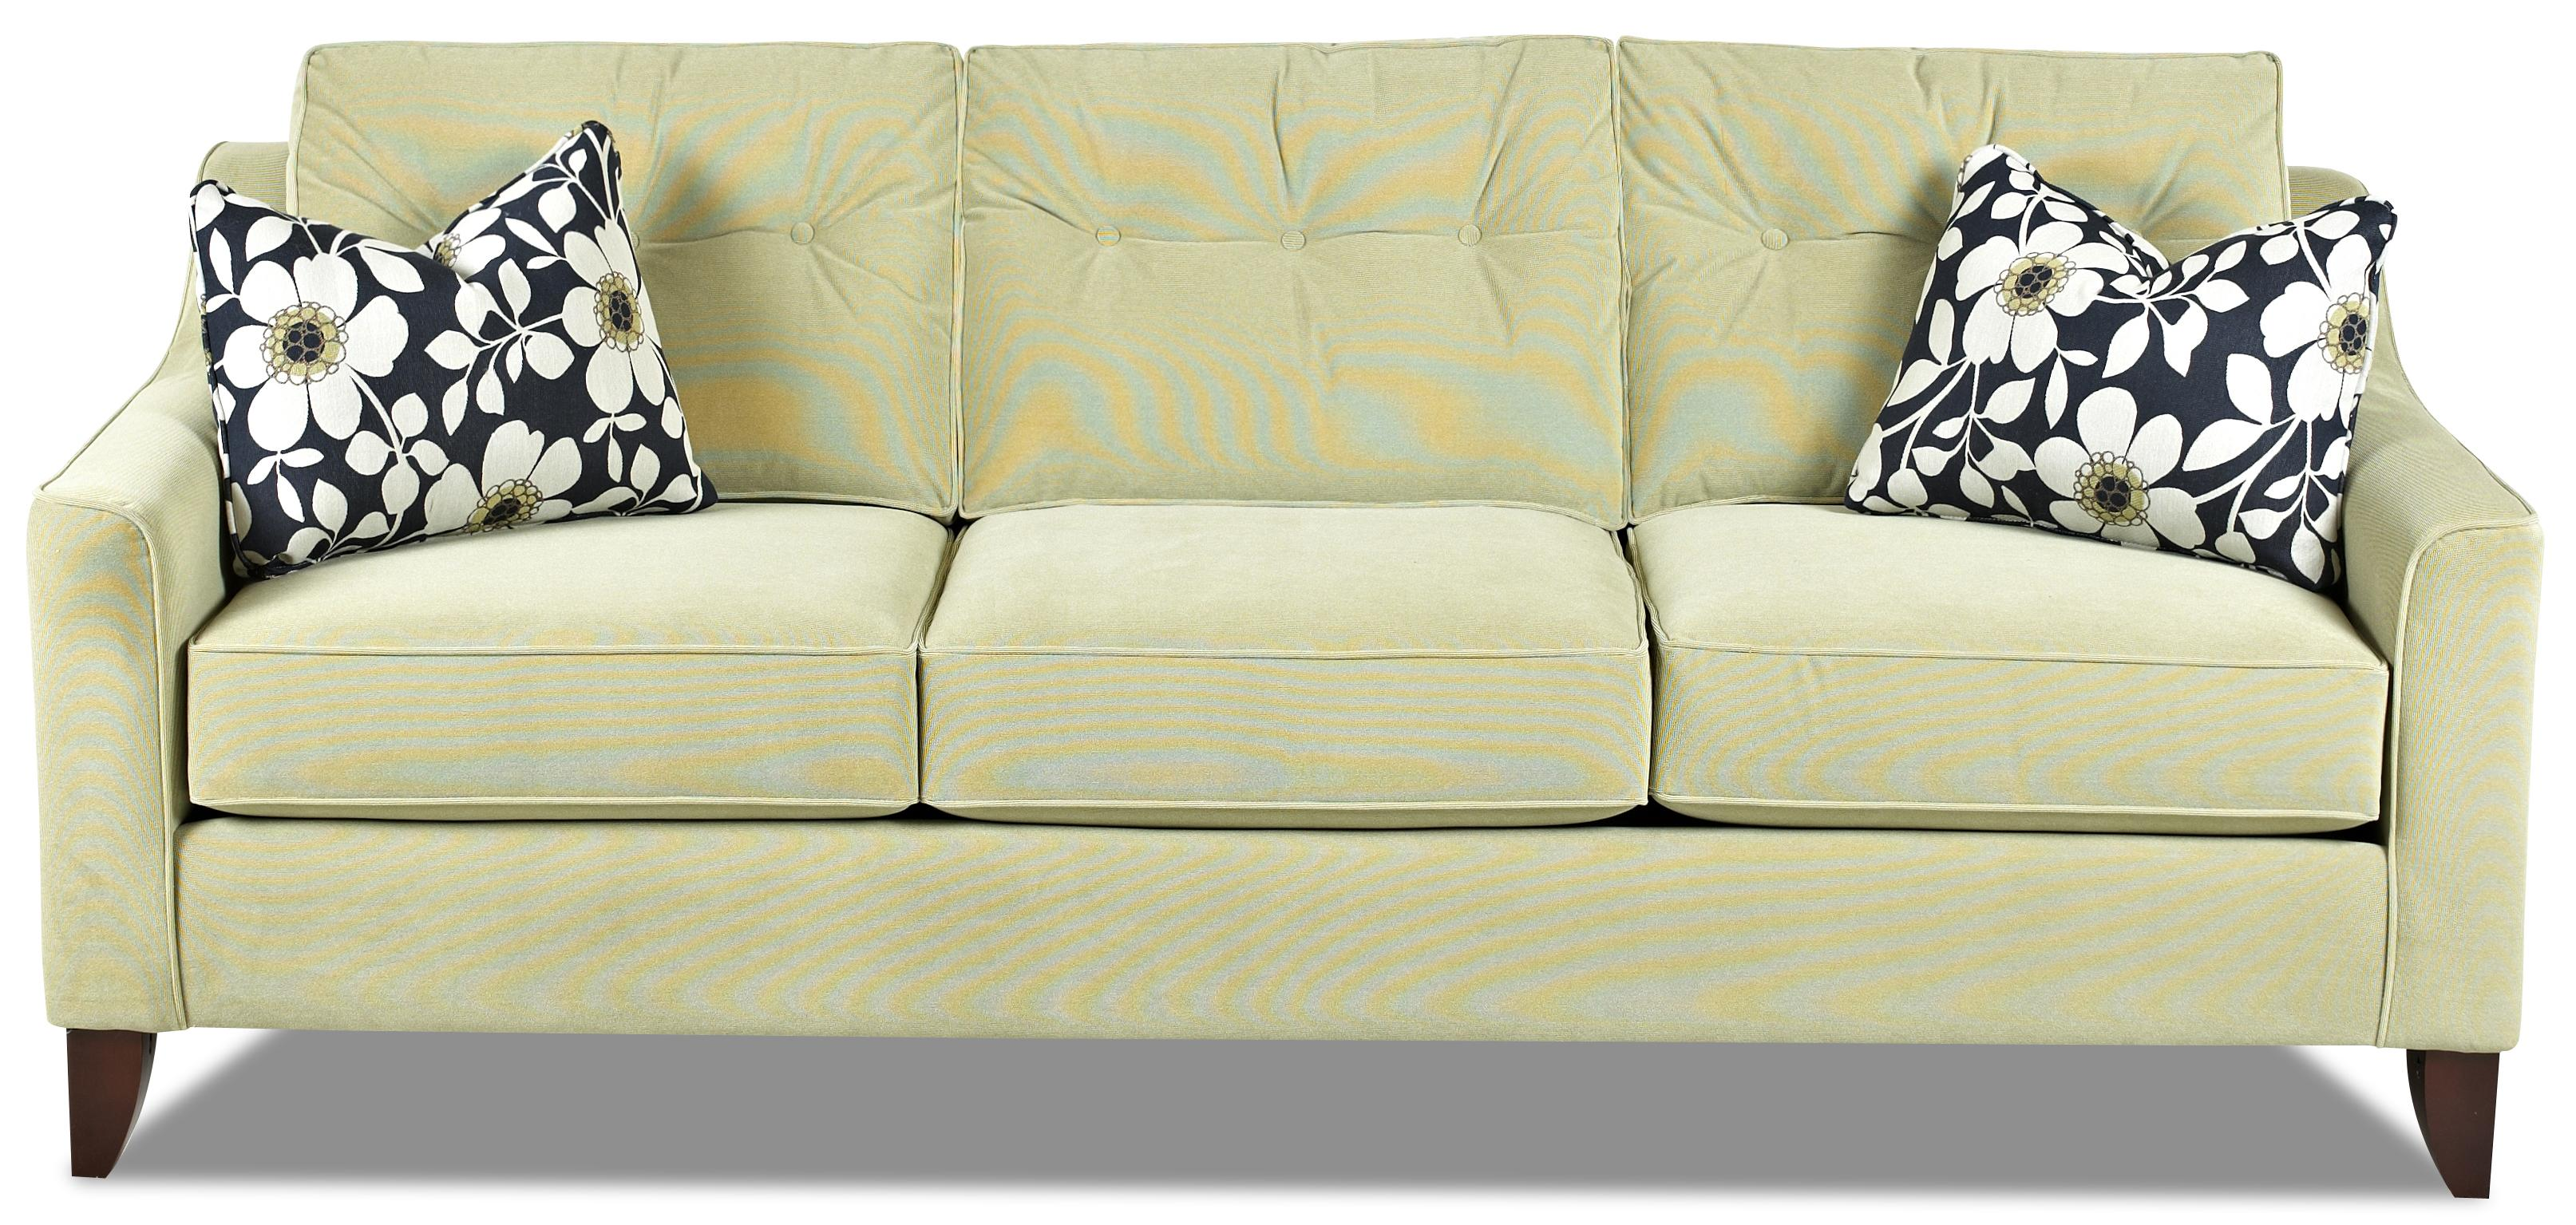 Klaussner rhea mid century modern style sofa with tufted for Designer sofa outlet